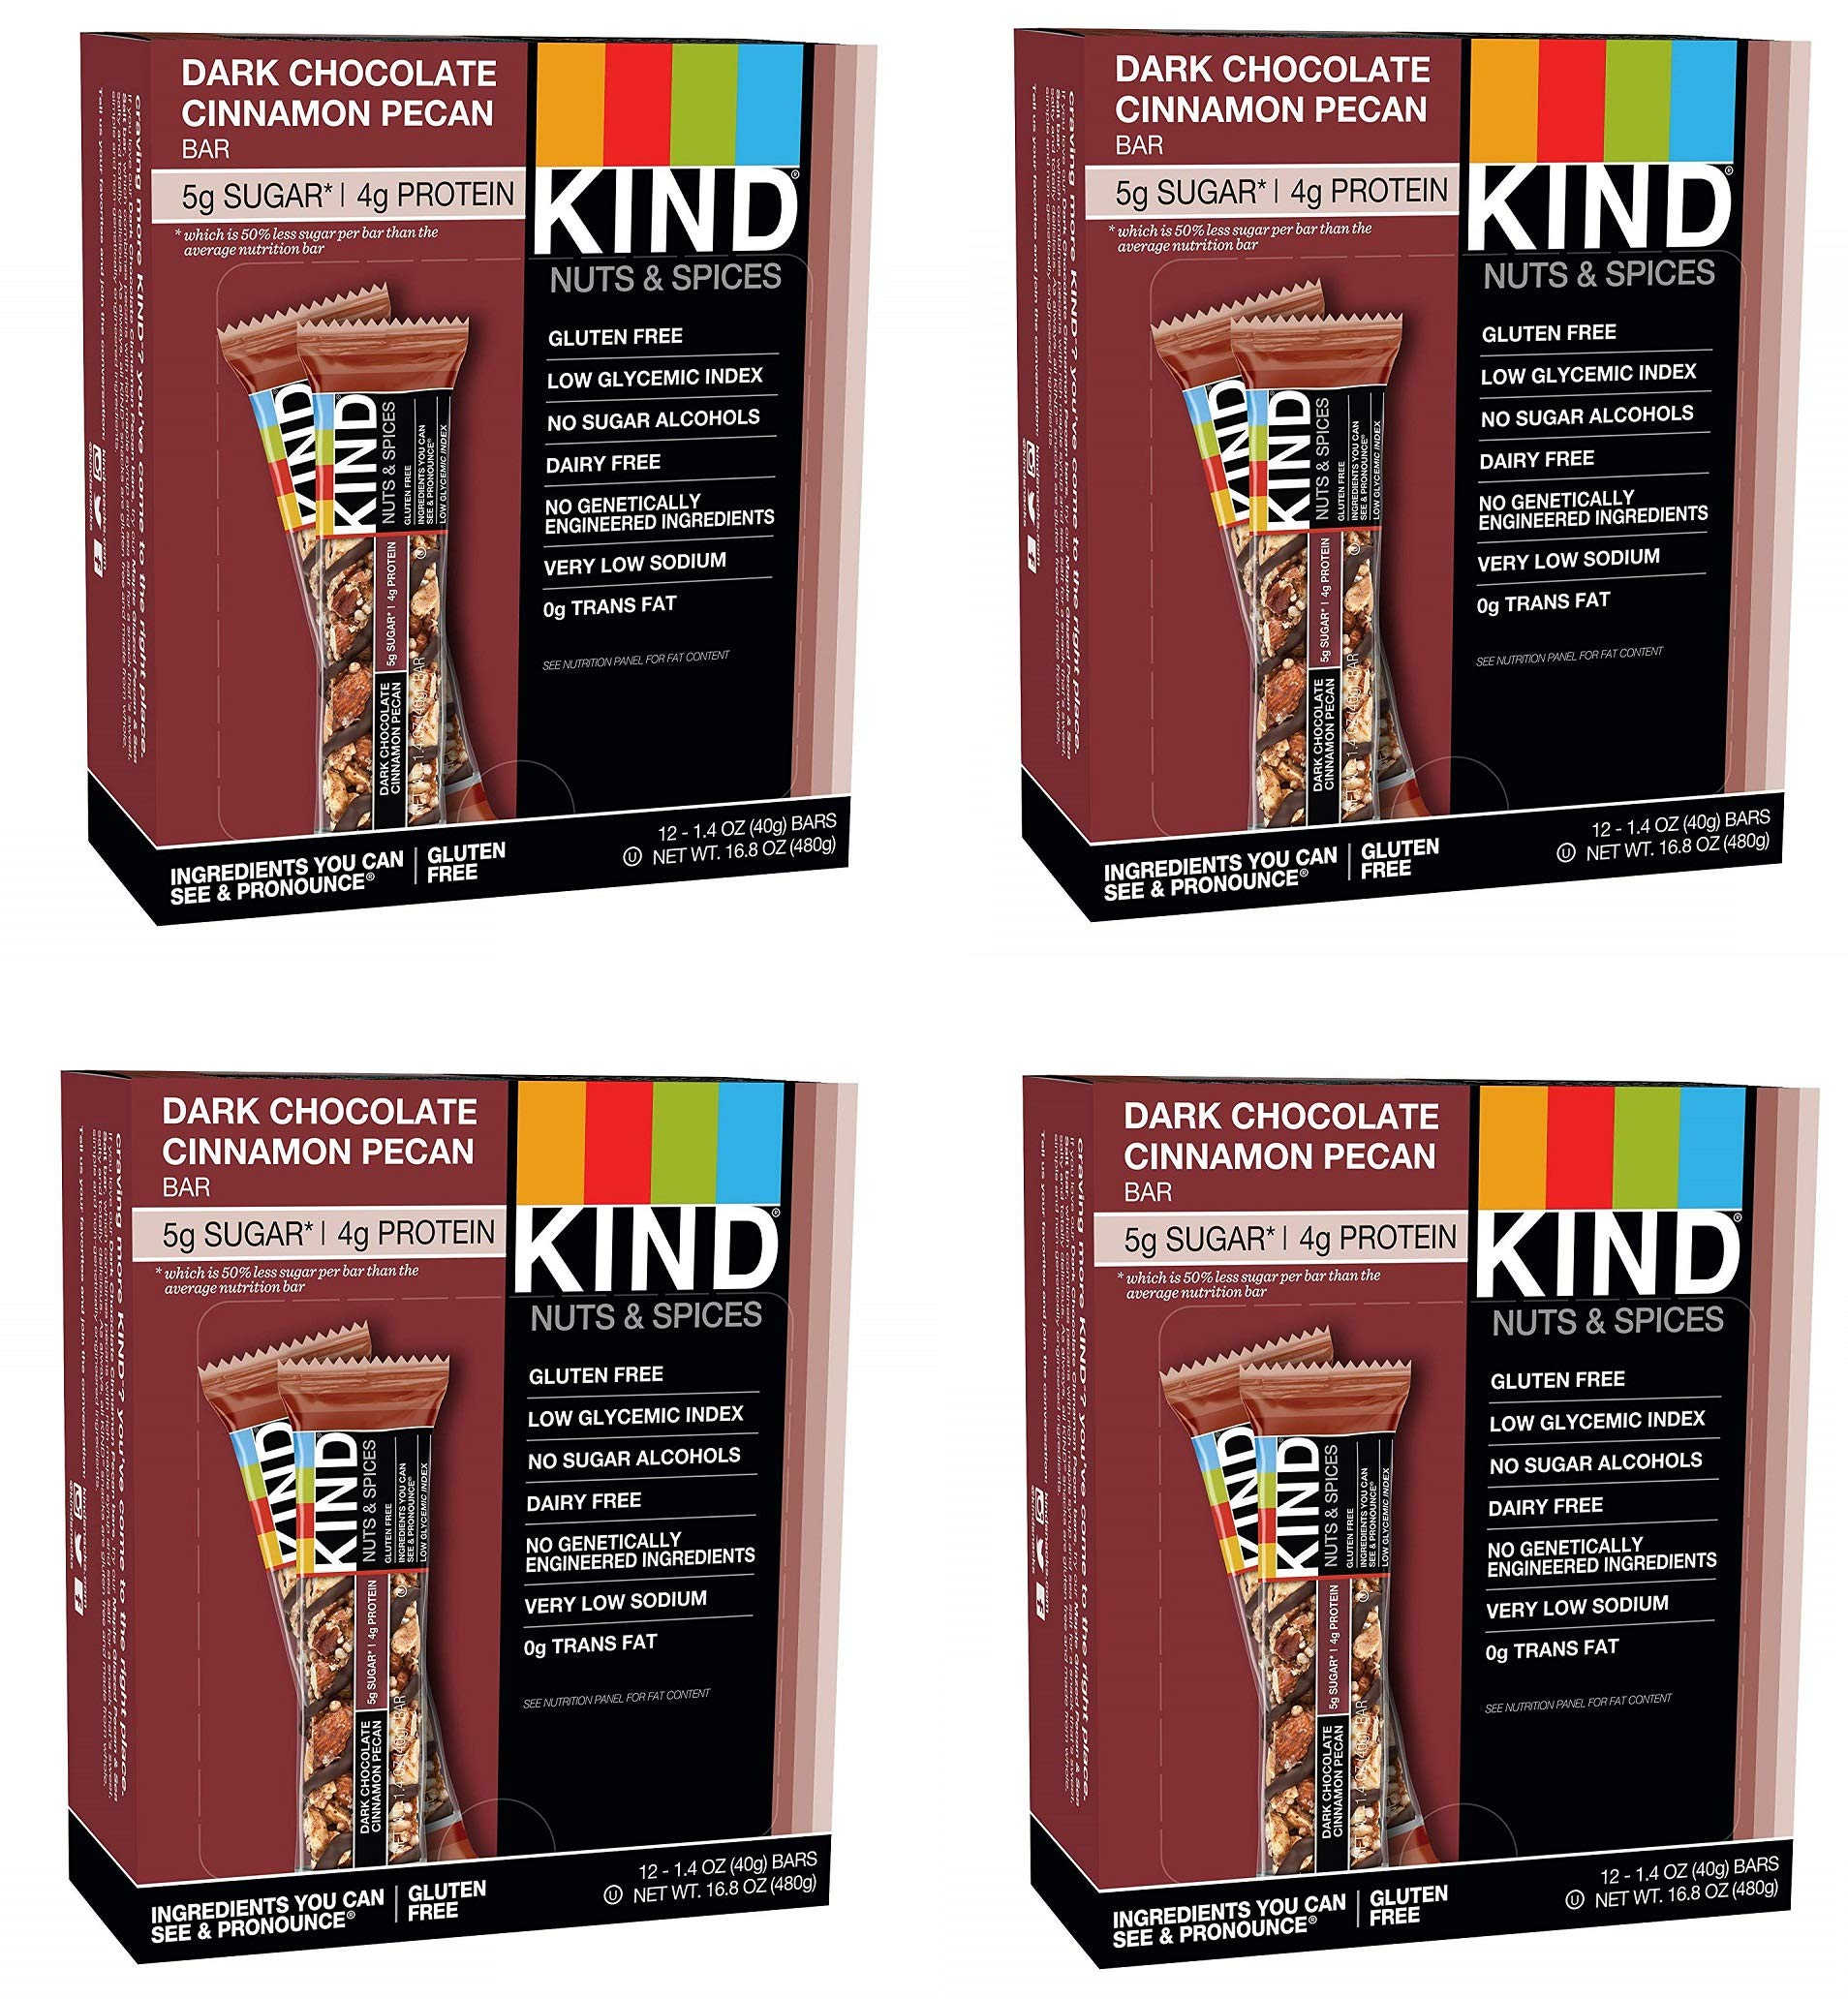 KIND Bars, Dark Chocolate Cinnamon Pecan, Gluten Free, Low Sugar, 1.4oz, 48 Bars